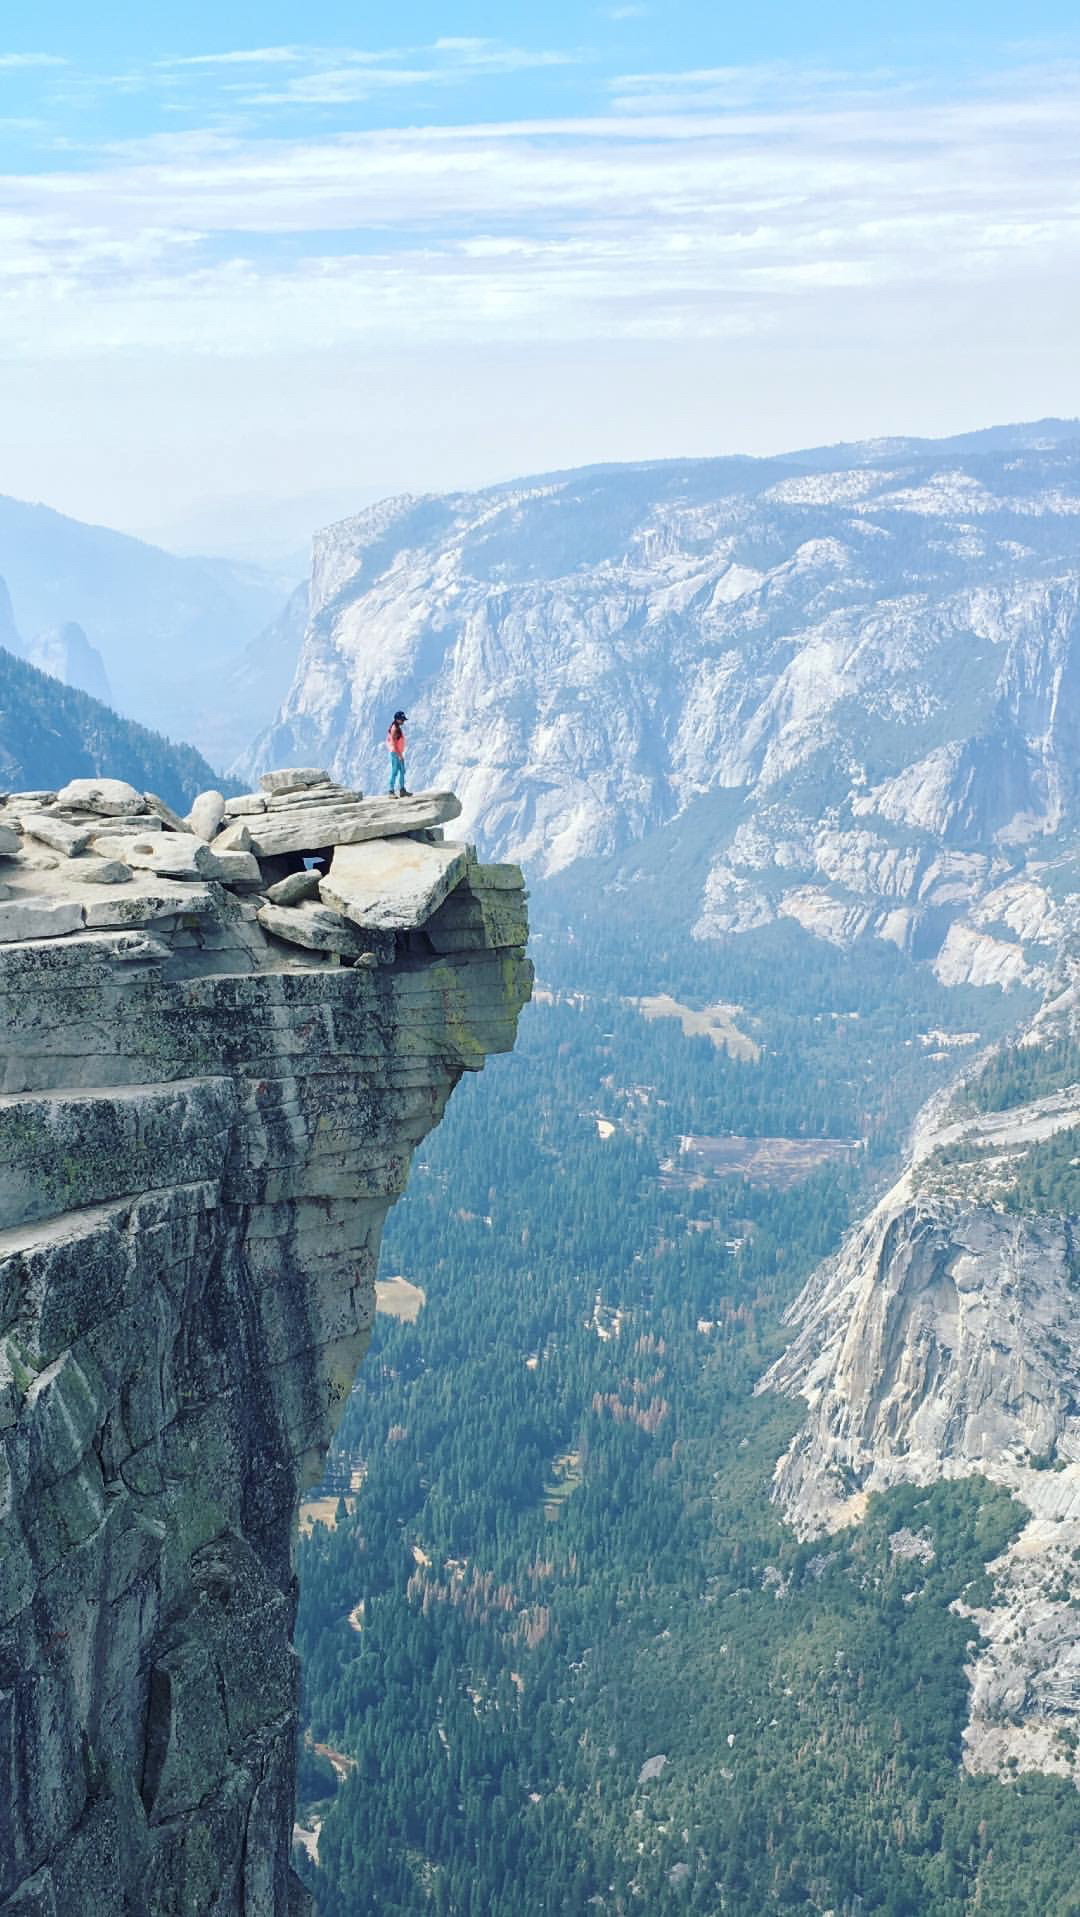 National-Parks-You-Must-See-Yosemite-National-Park-2.JPG